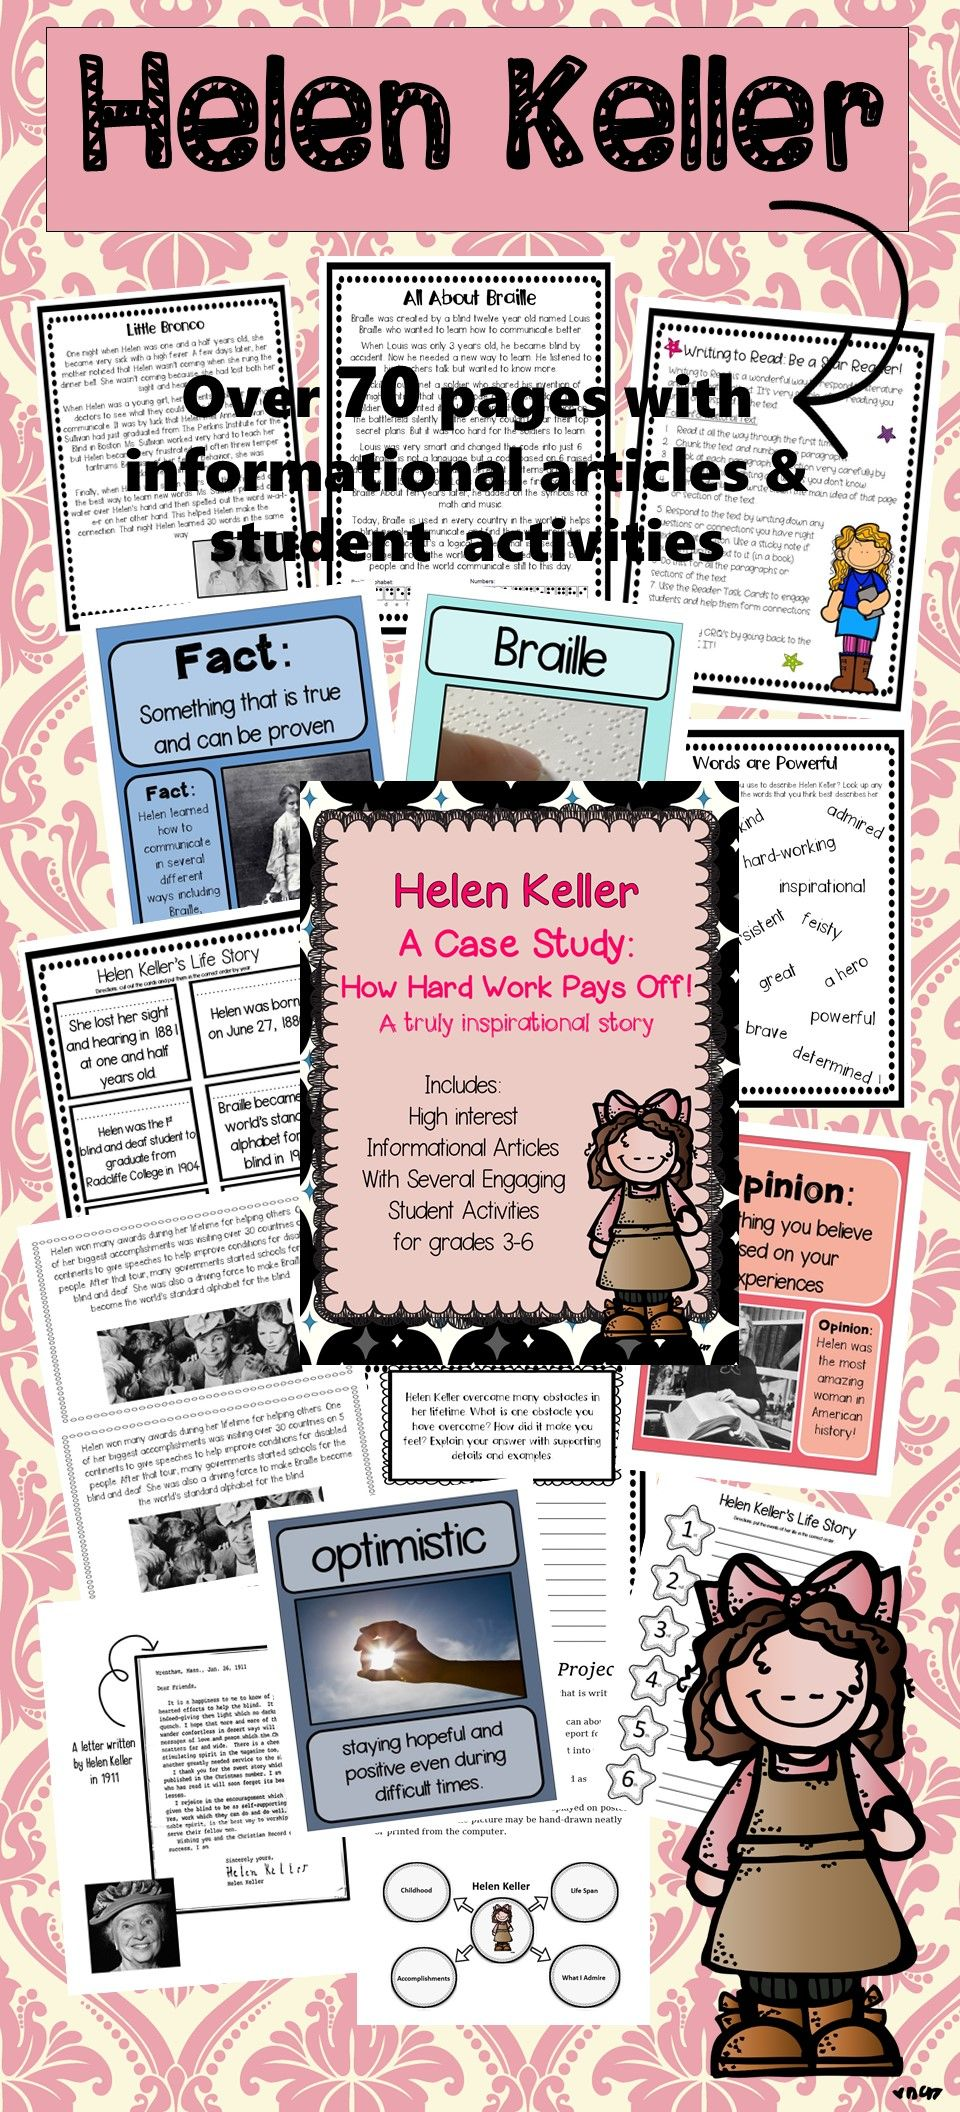 Preposition In Learn In Marathi All Complate: The Life Story Of Helen Keller Biography Unit Articles